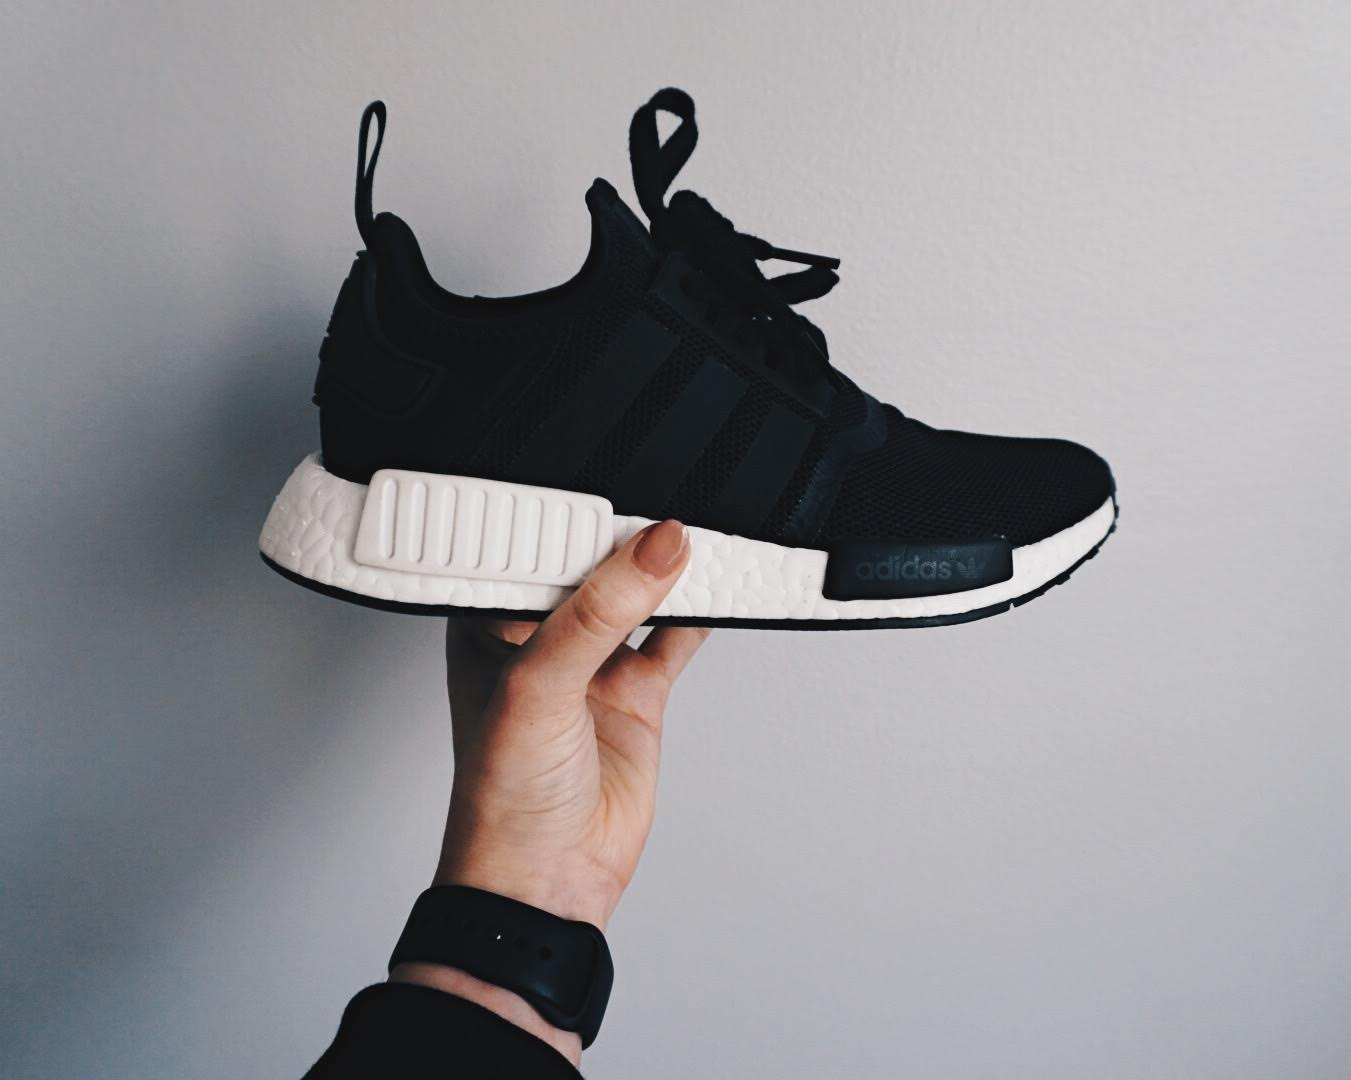 b6e5ff16b45e If you are eyeing your very first pair of Adidas NMD take the plunge. You  will not be disappointed. As for sizing it can be a little tricky.